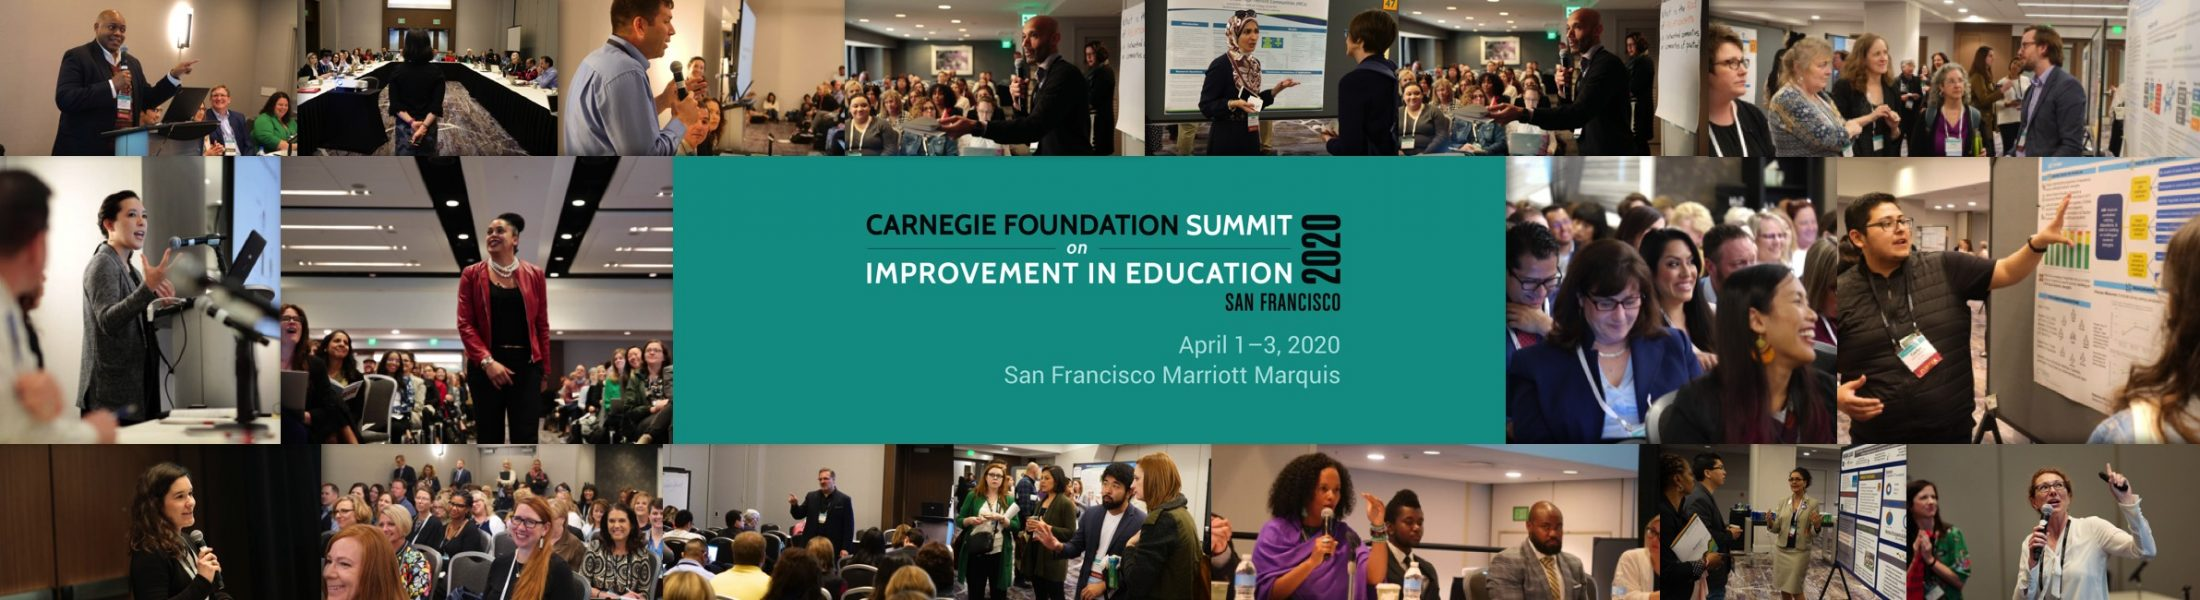 Summit on Improvement in Education | Carnegie Foundation for